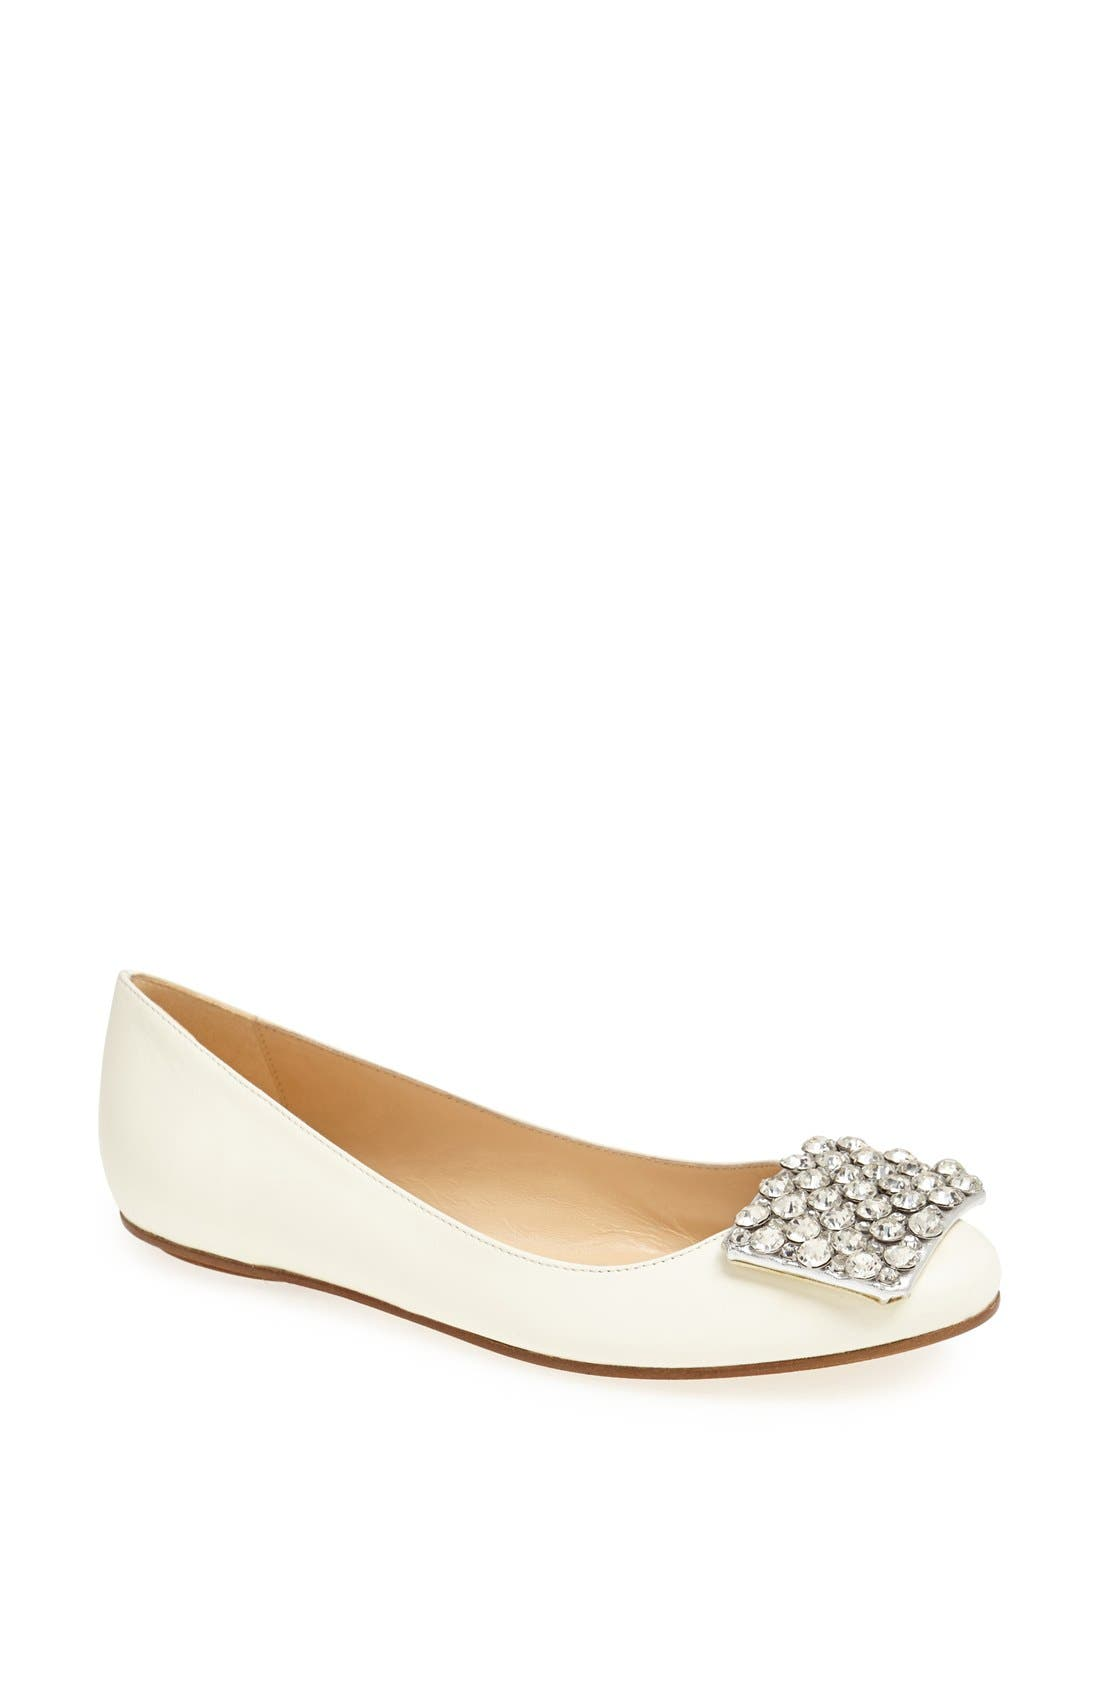 Main Image - kate spade new york 'brilliant' nappa leather flat